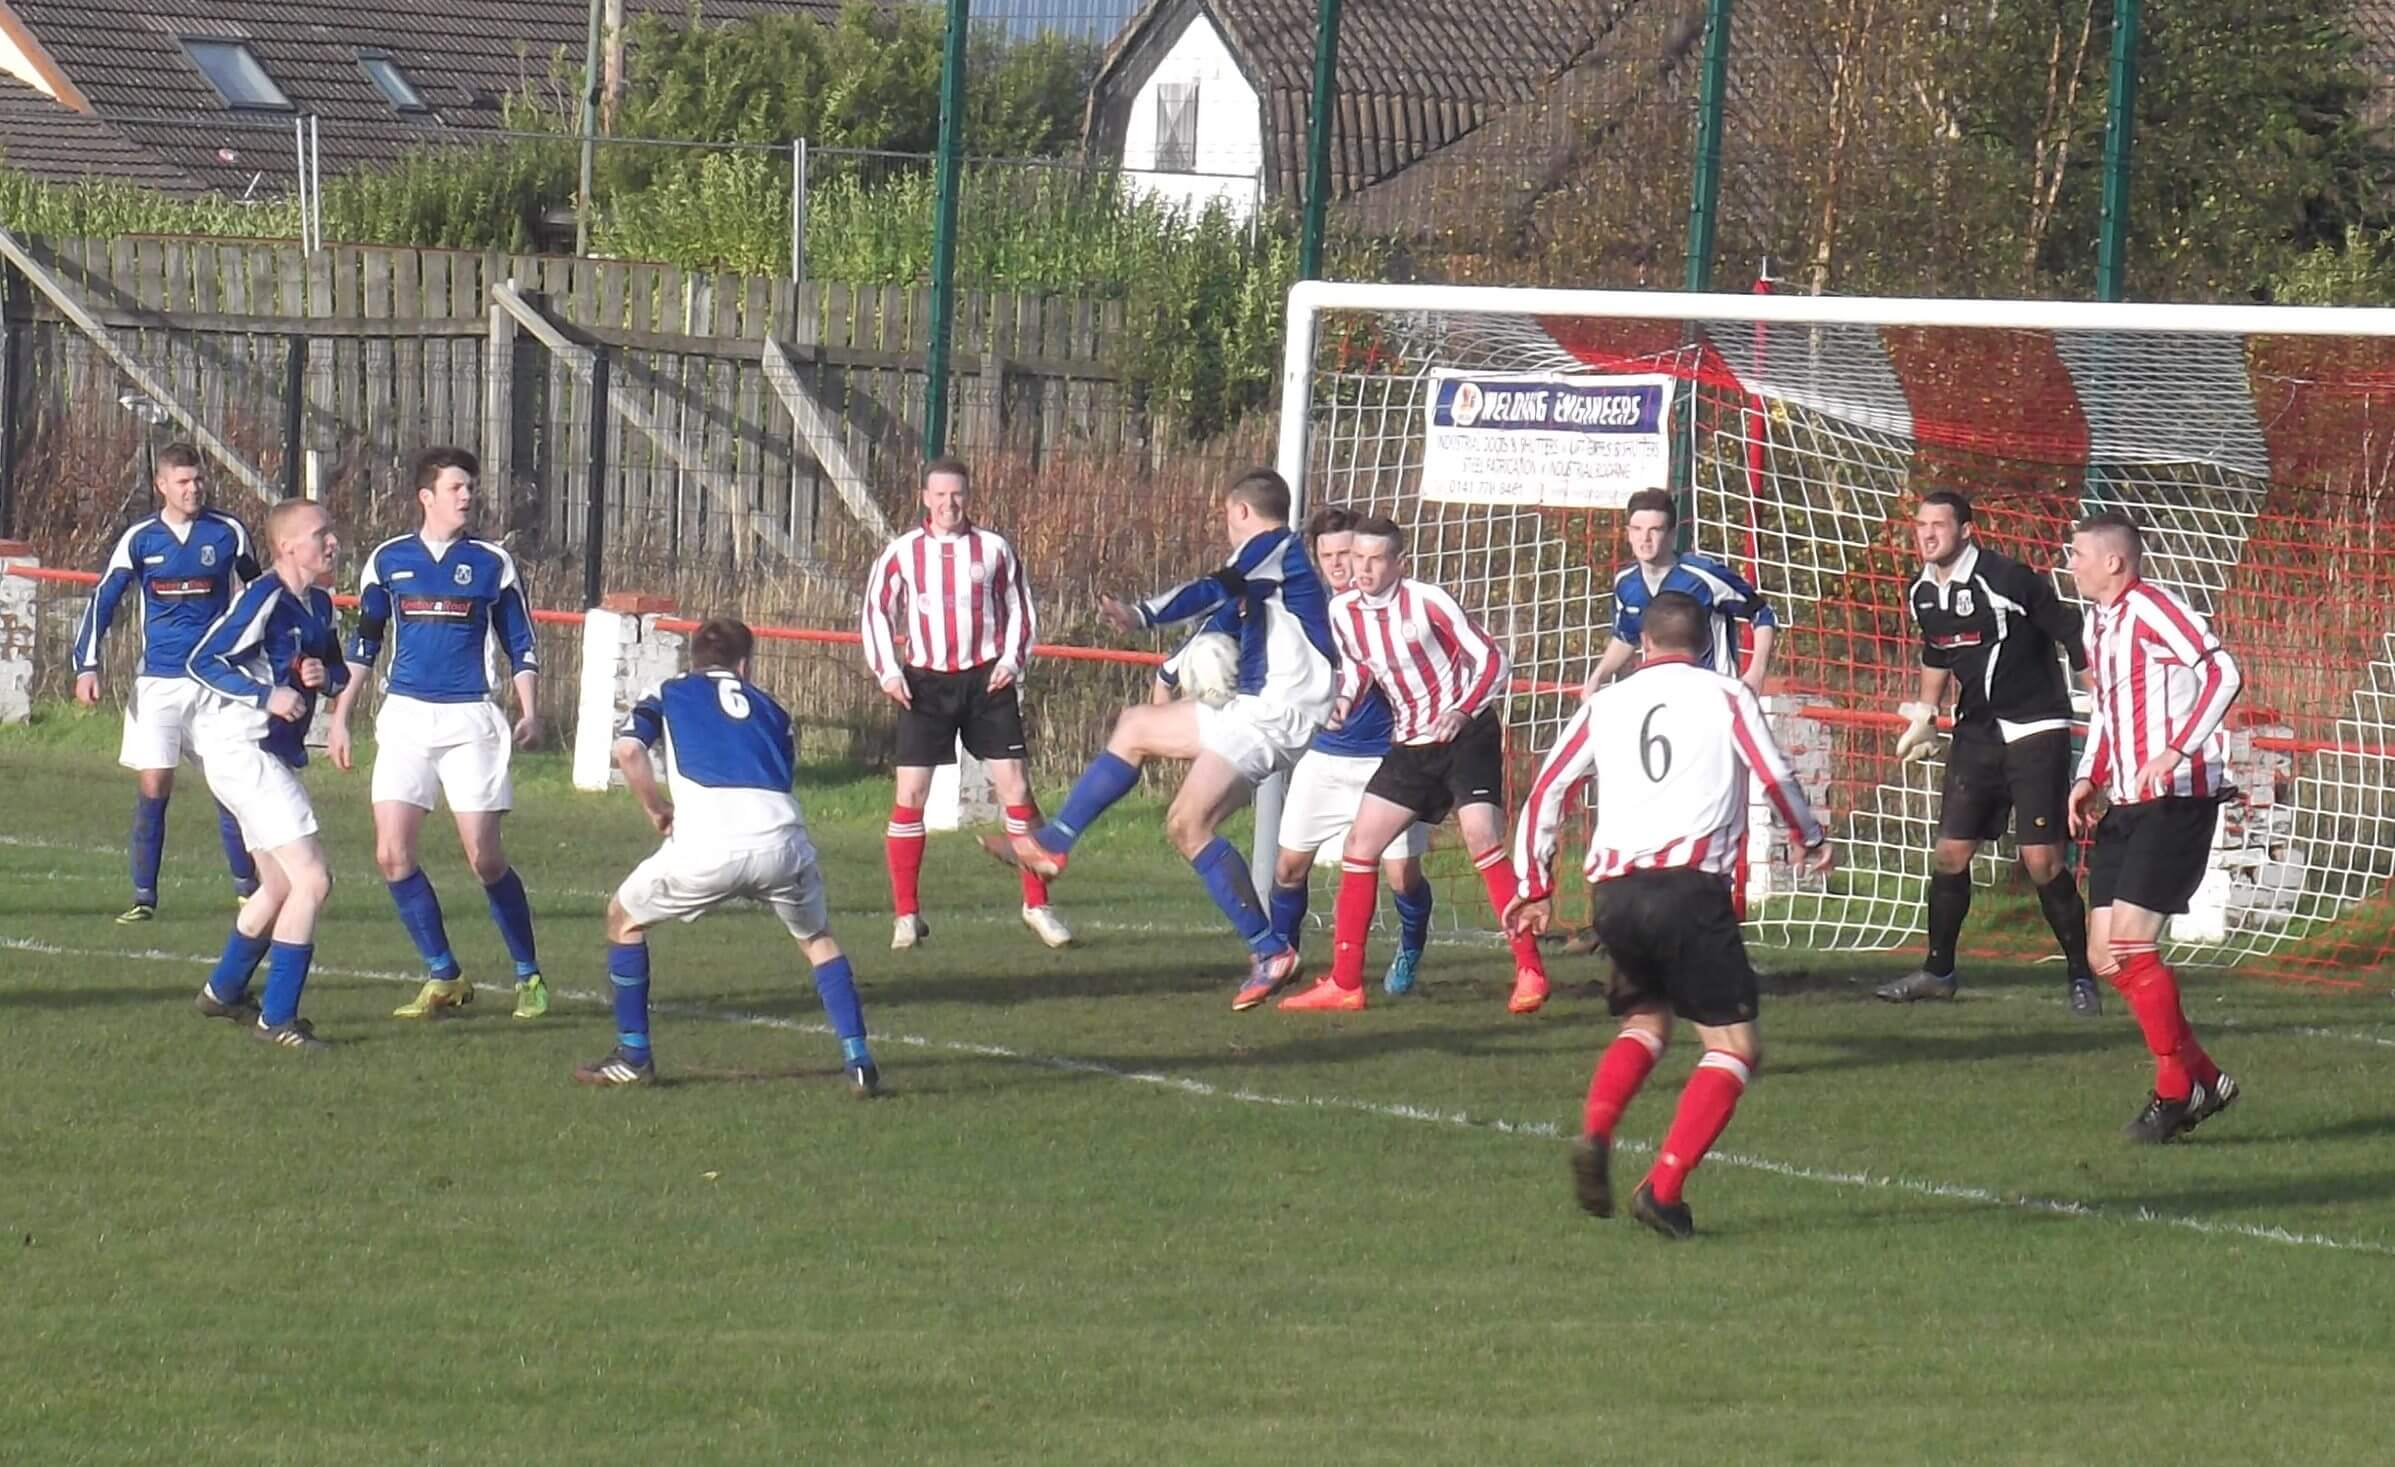 Second half penalty claim as defender appears to almost catch the ball